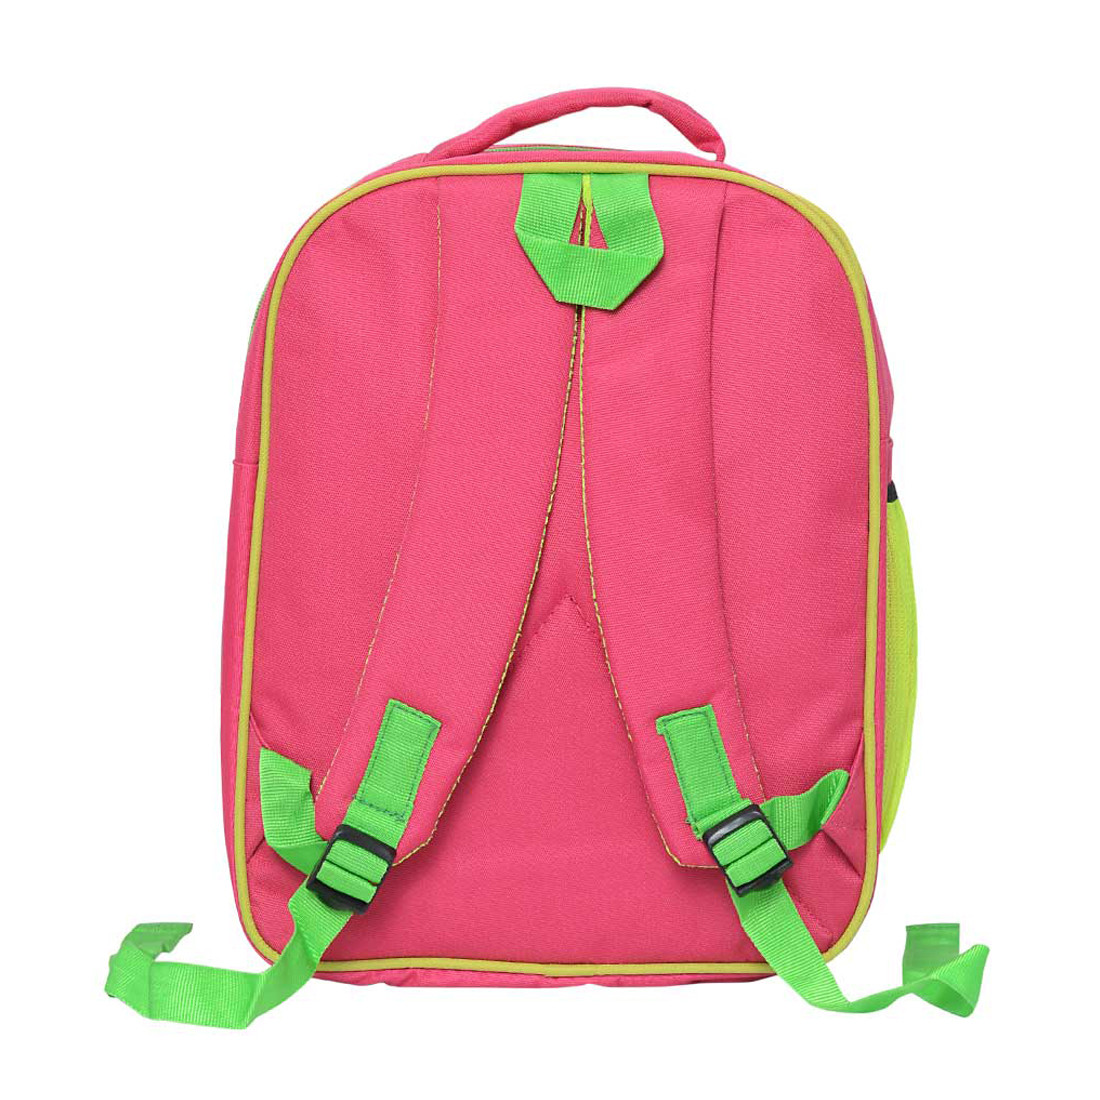 SDC My Doll Polyester School Bag + Milton Water Bottle + Pencil ... 35801ecdbfe41